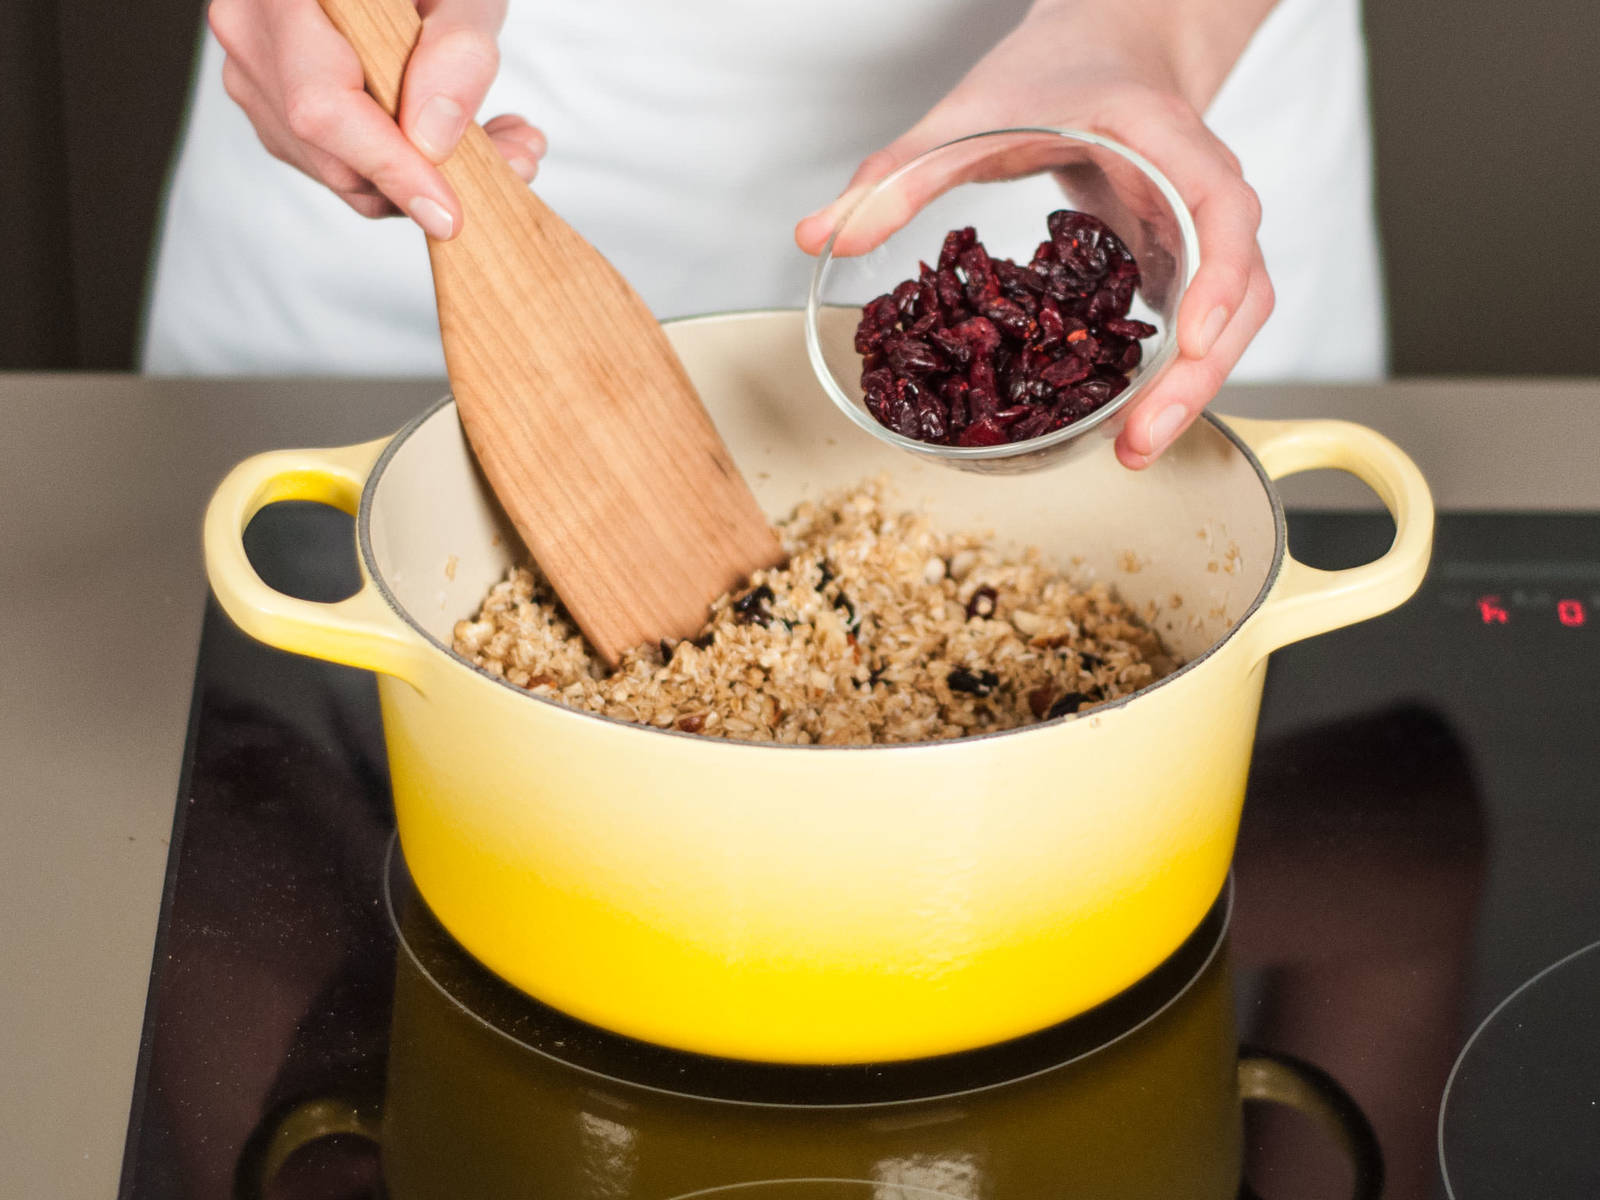 Add oats, coconut, chopped nuts, dried fruit, and cranberries. Stir thoroughly to combine.